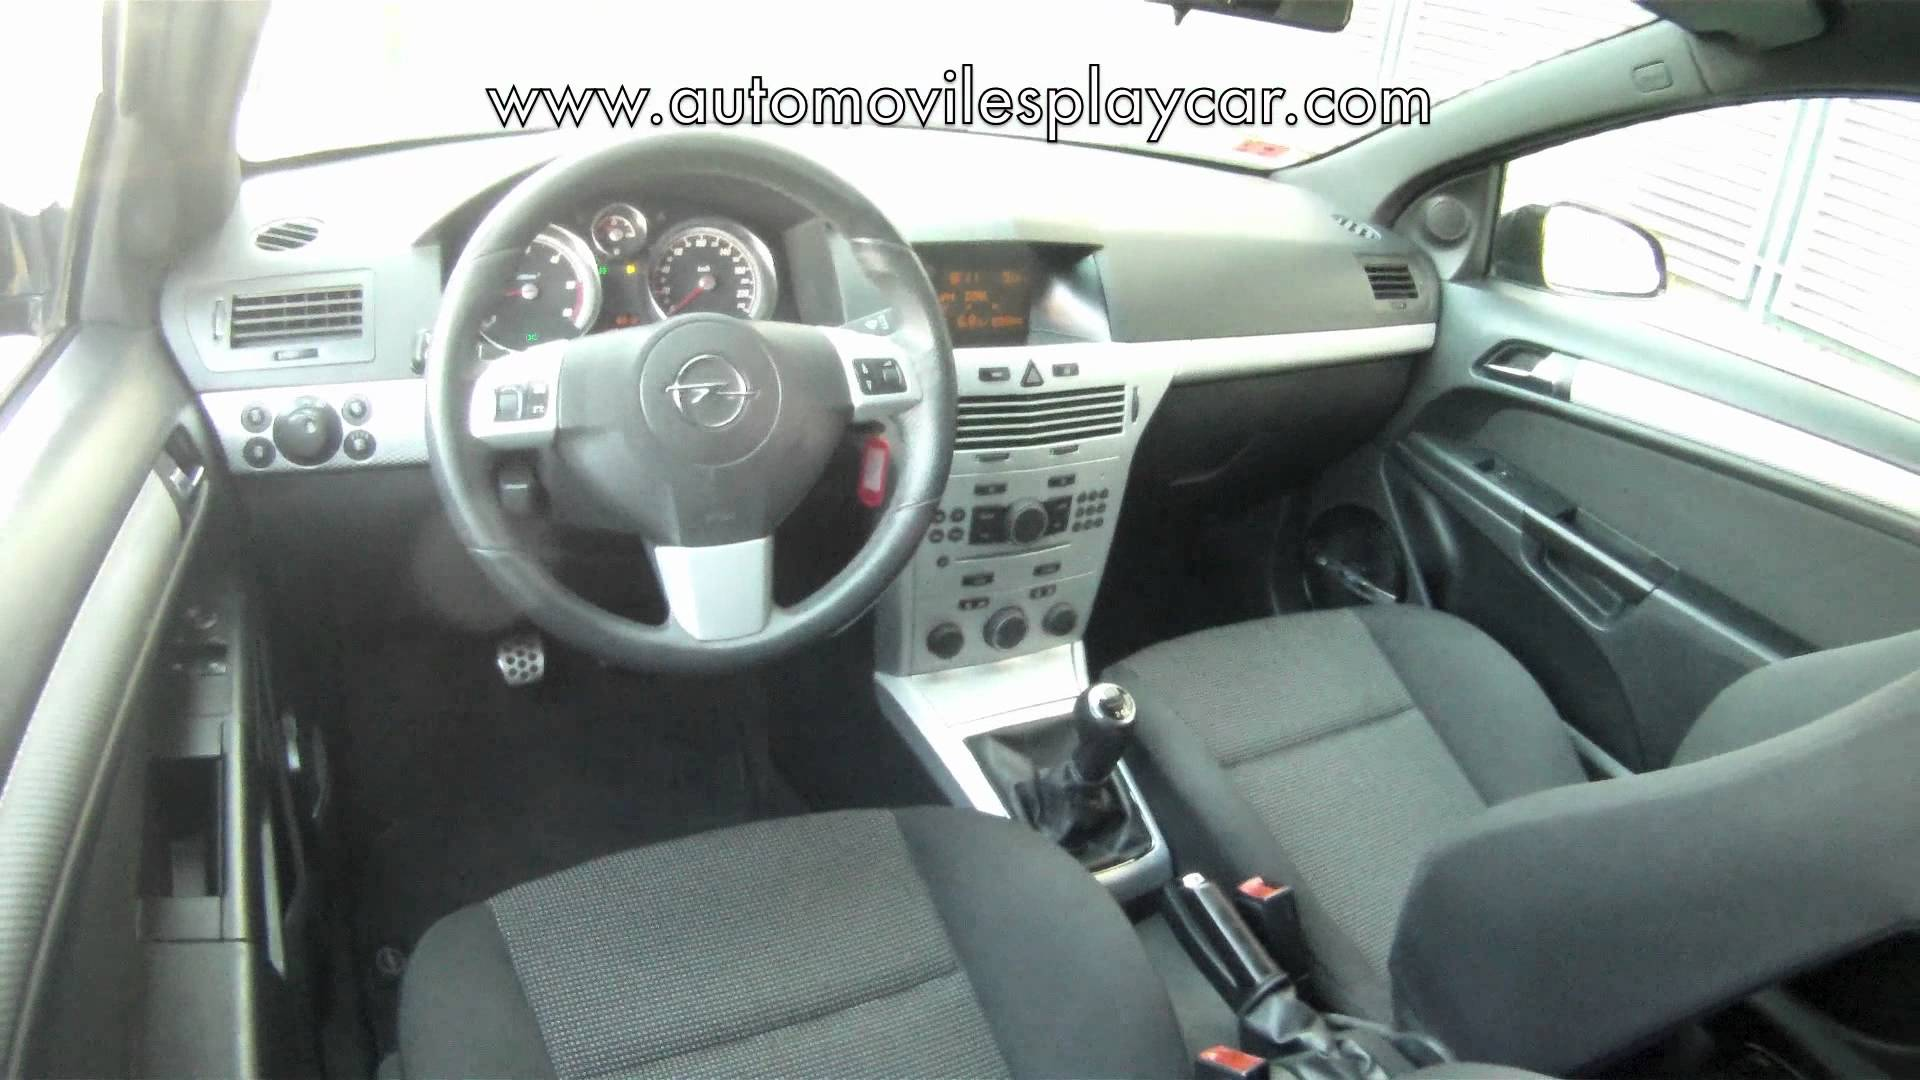 2006 Opel Astra h – pictures, information and specs - Auto-Database.com